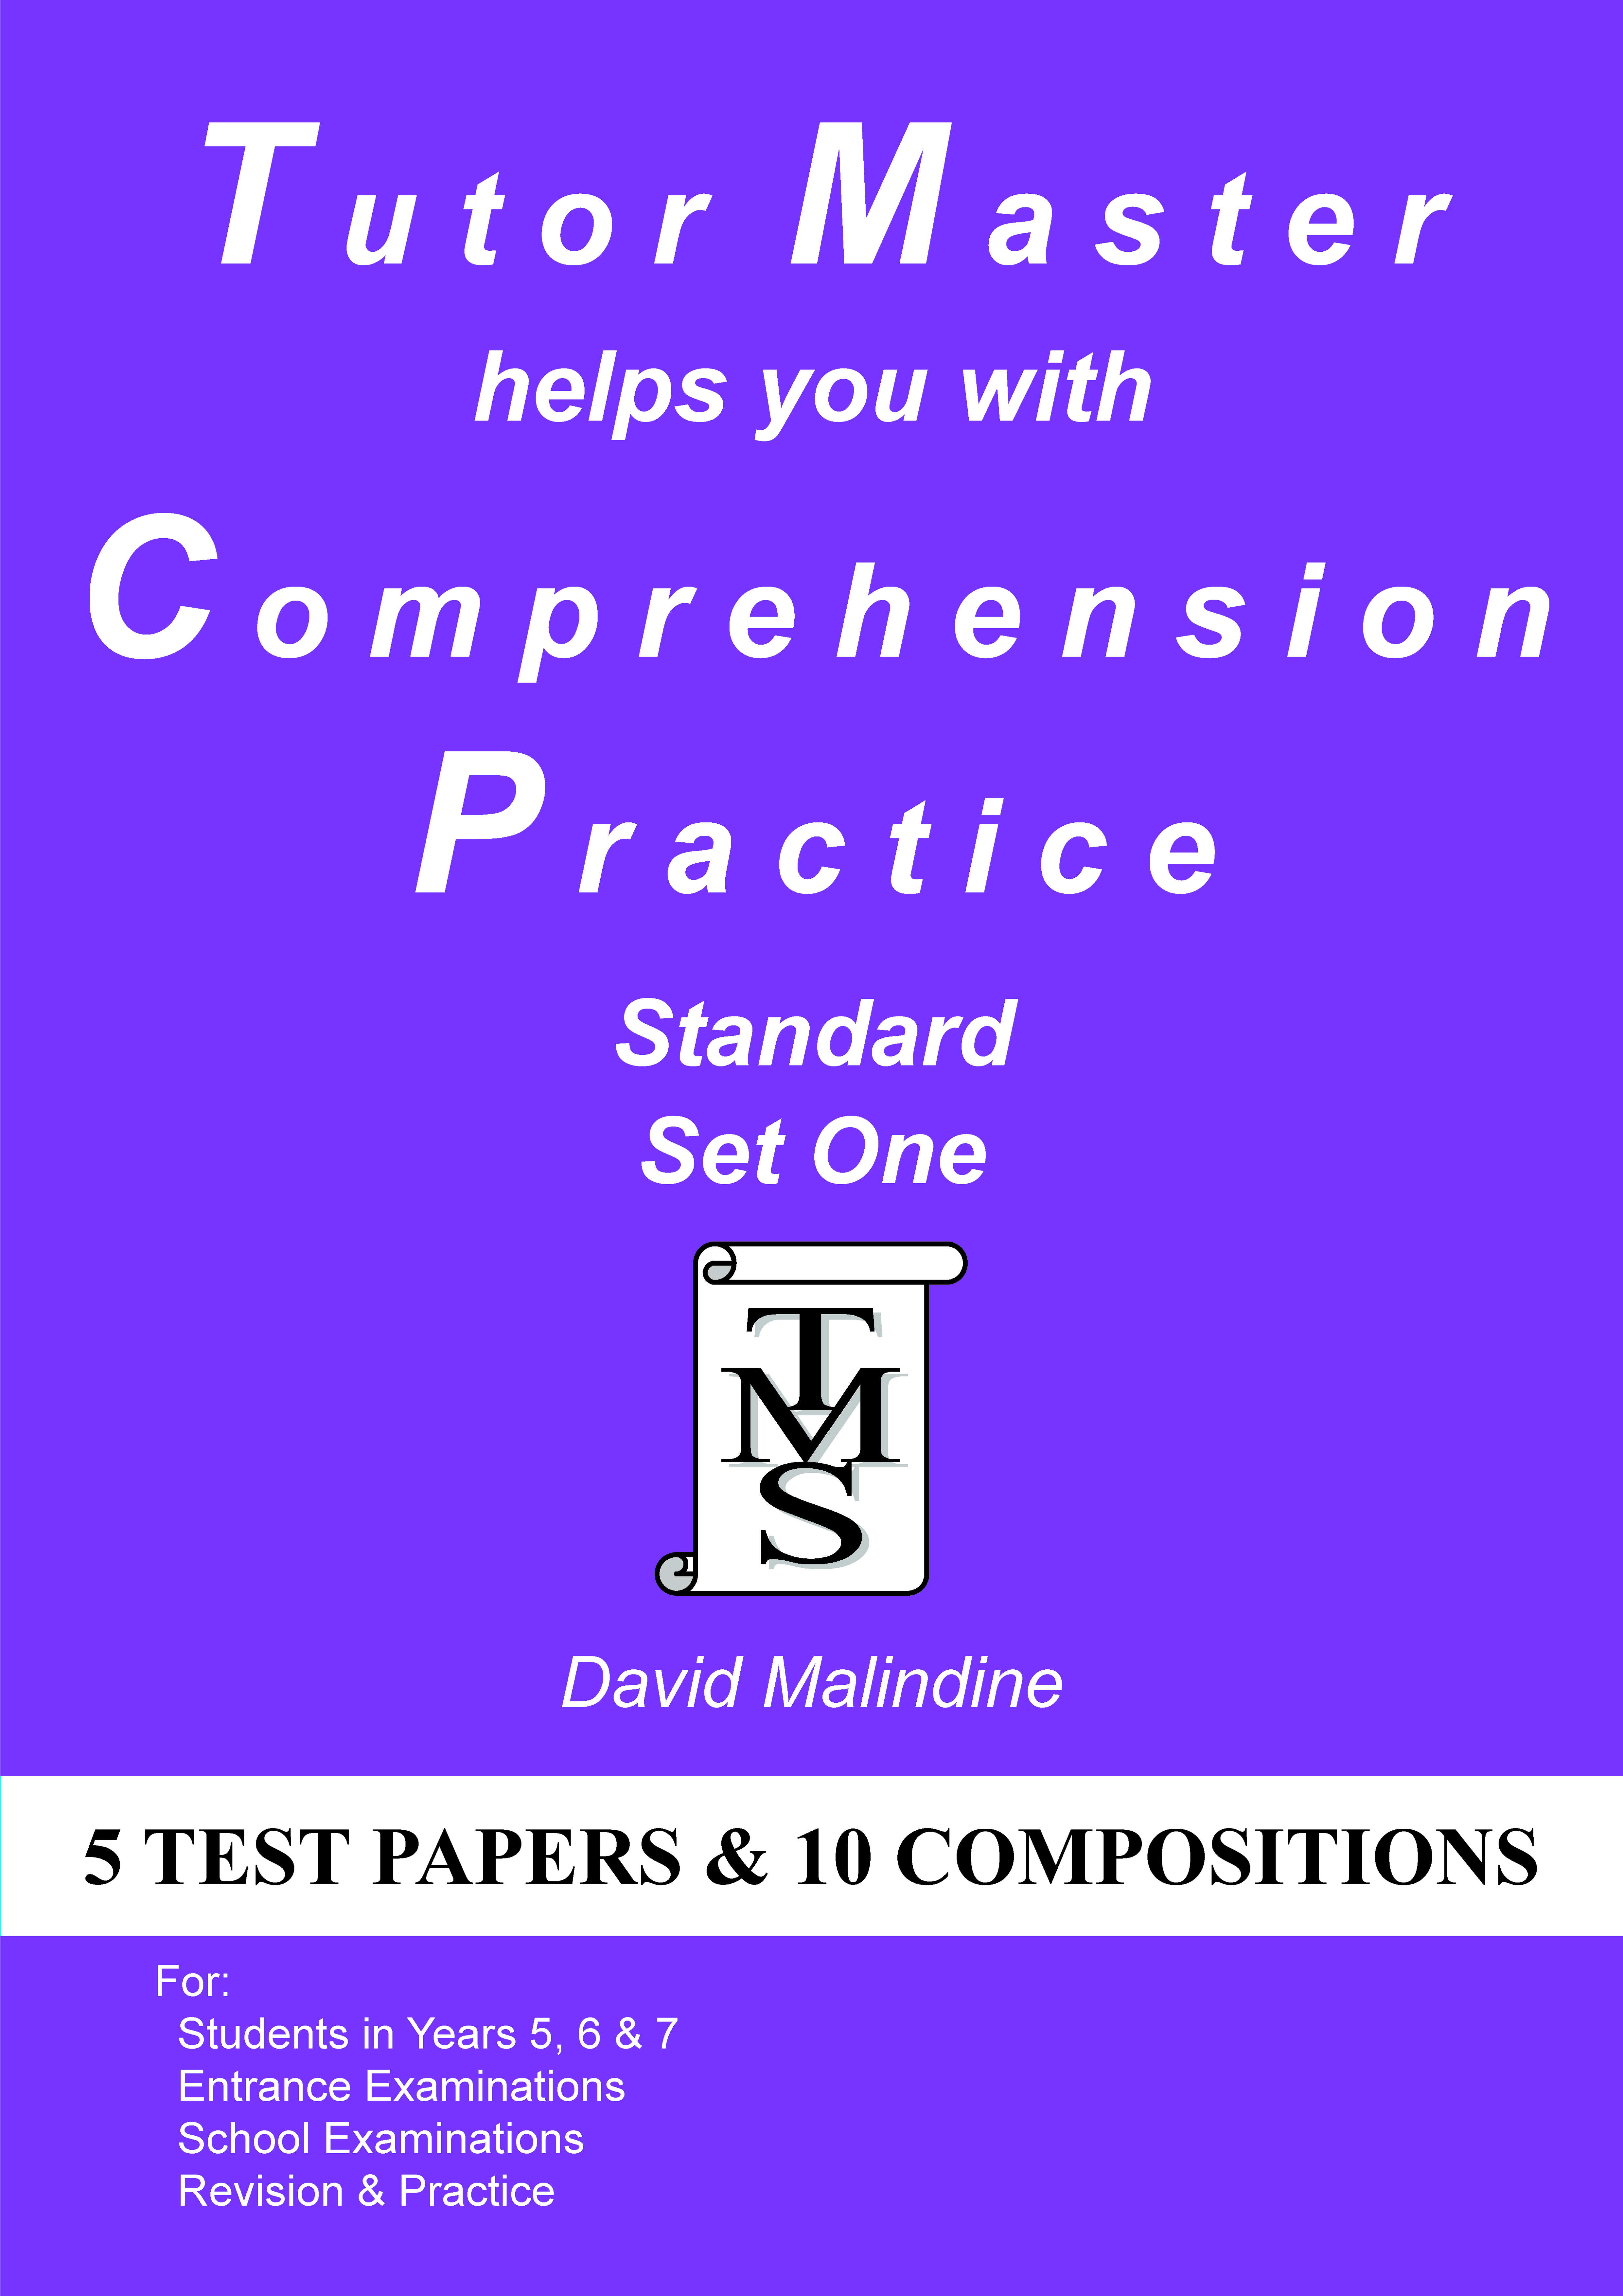 The  cover of Tutor Master helps you with Comprehension Practice - Standard Set One